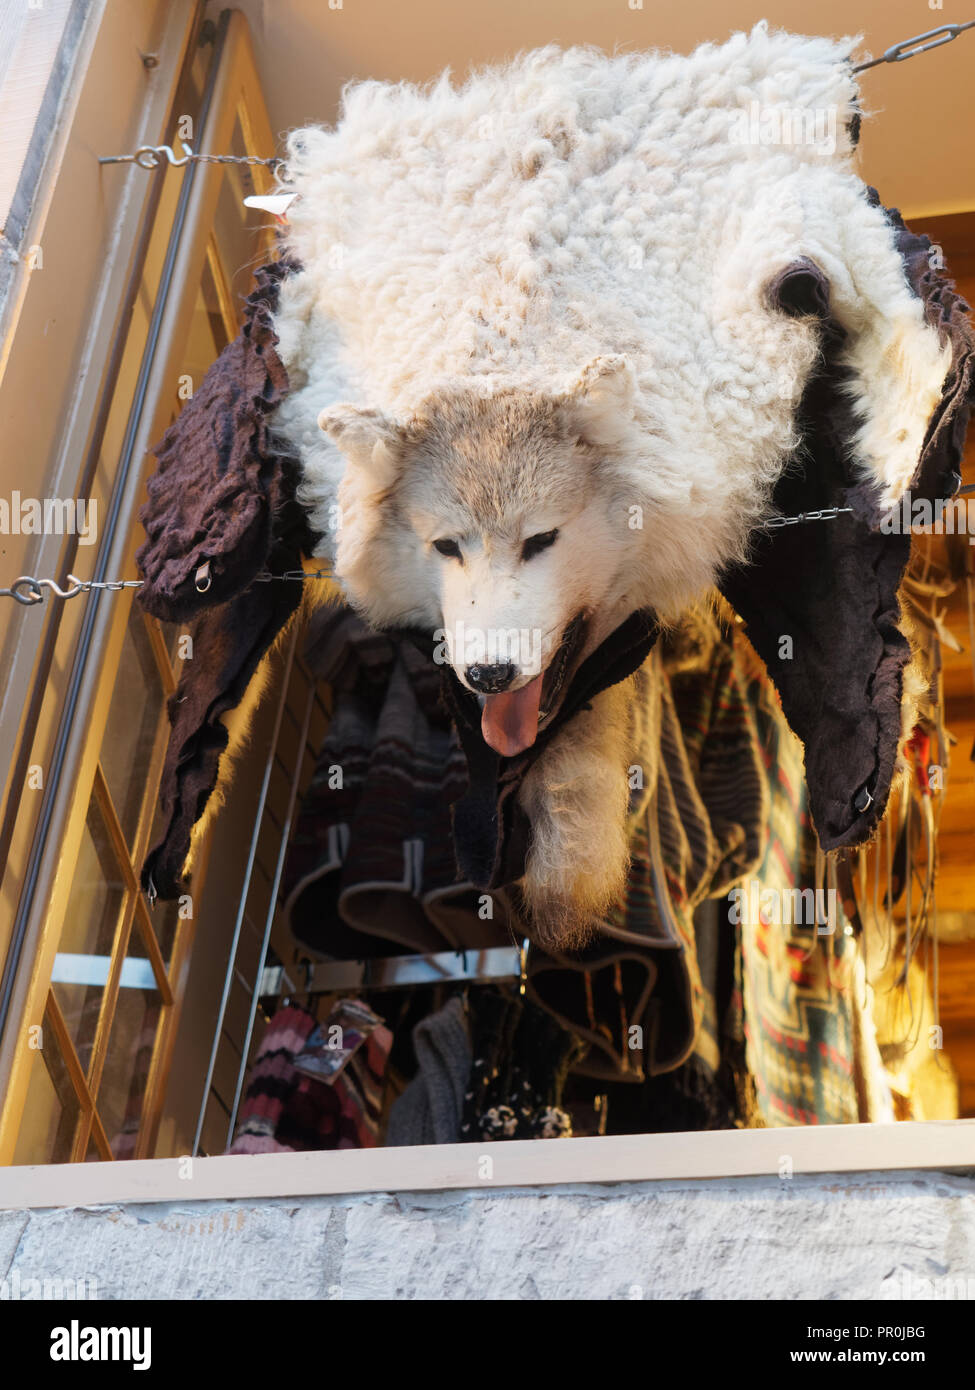 A wolf skin rug on display in the window of a boutique in old Quebec cit. Quebec,Canada - Stock Image